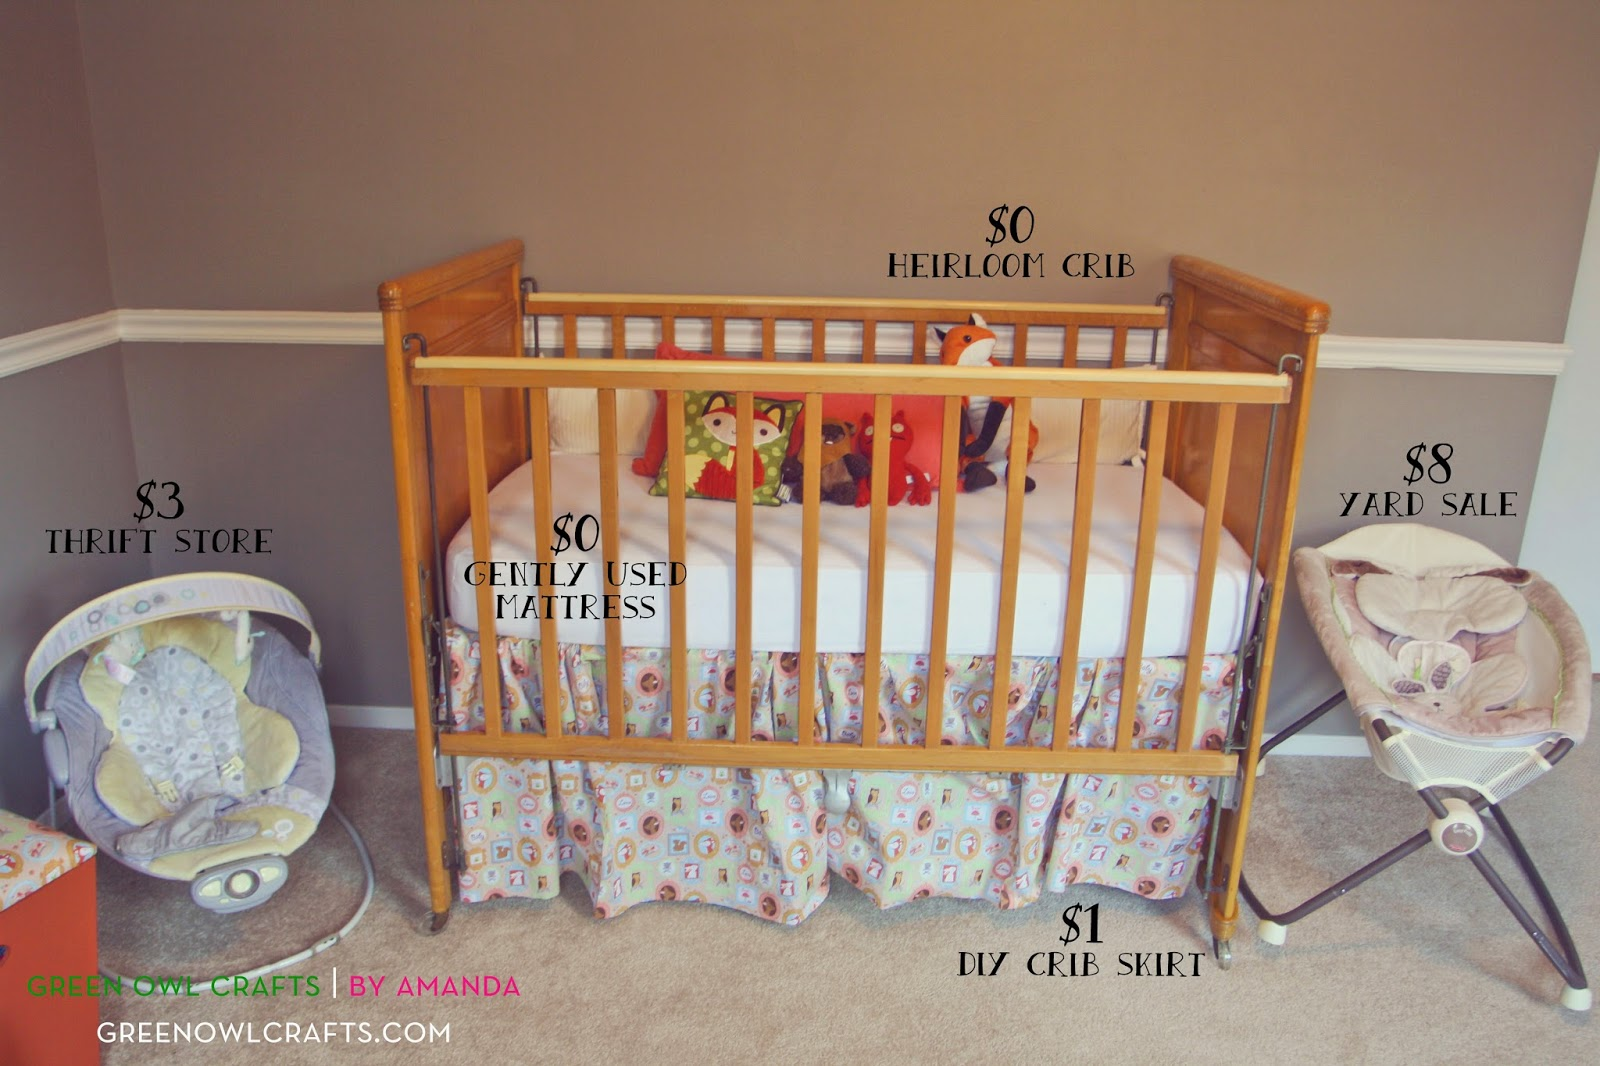 Used crib for sale in bangalore - Another Thing I D Like To Point Out Is When Buying Used Products Especially Baby Products Make Sure You Can Thoroughly Clean The Item